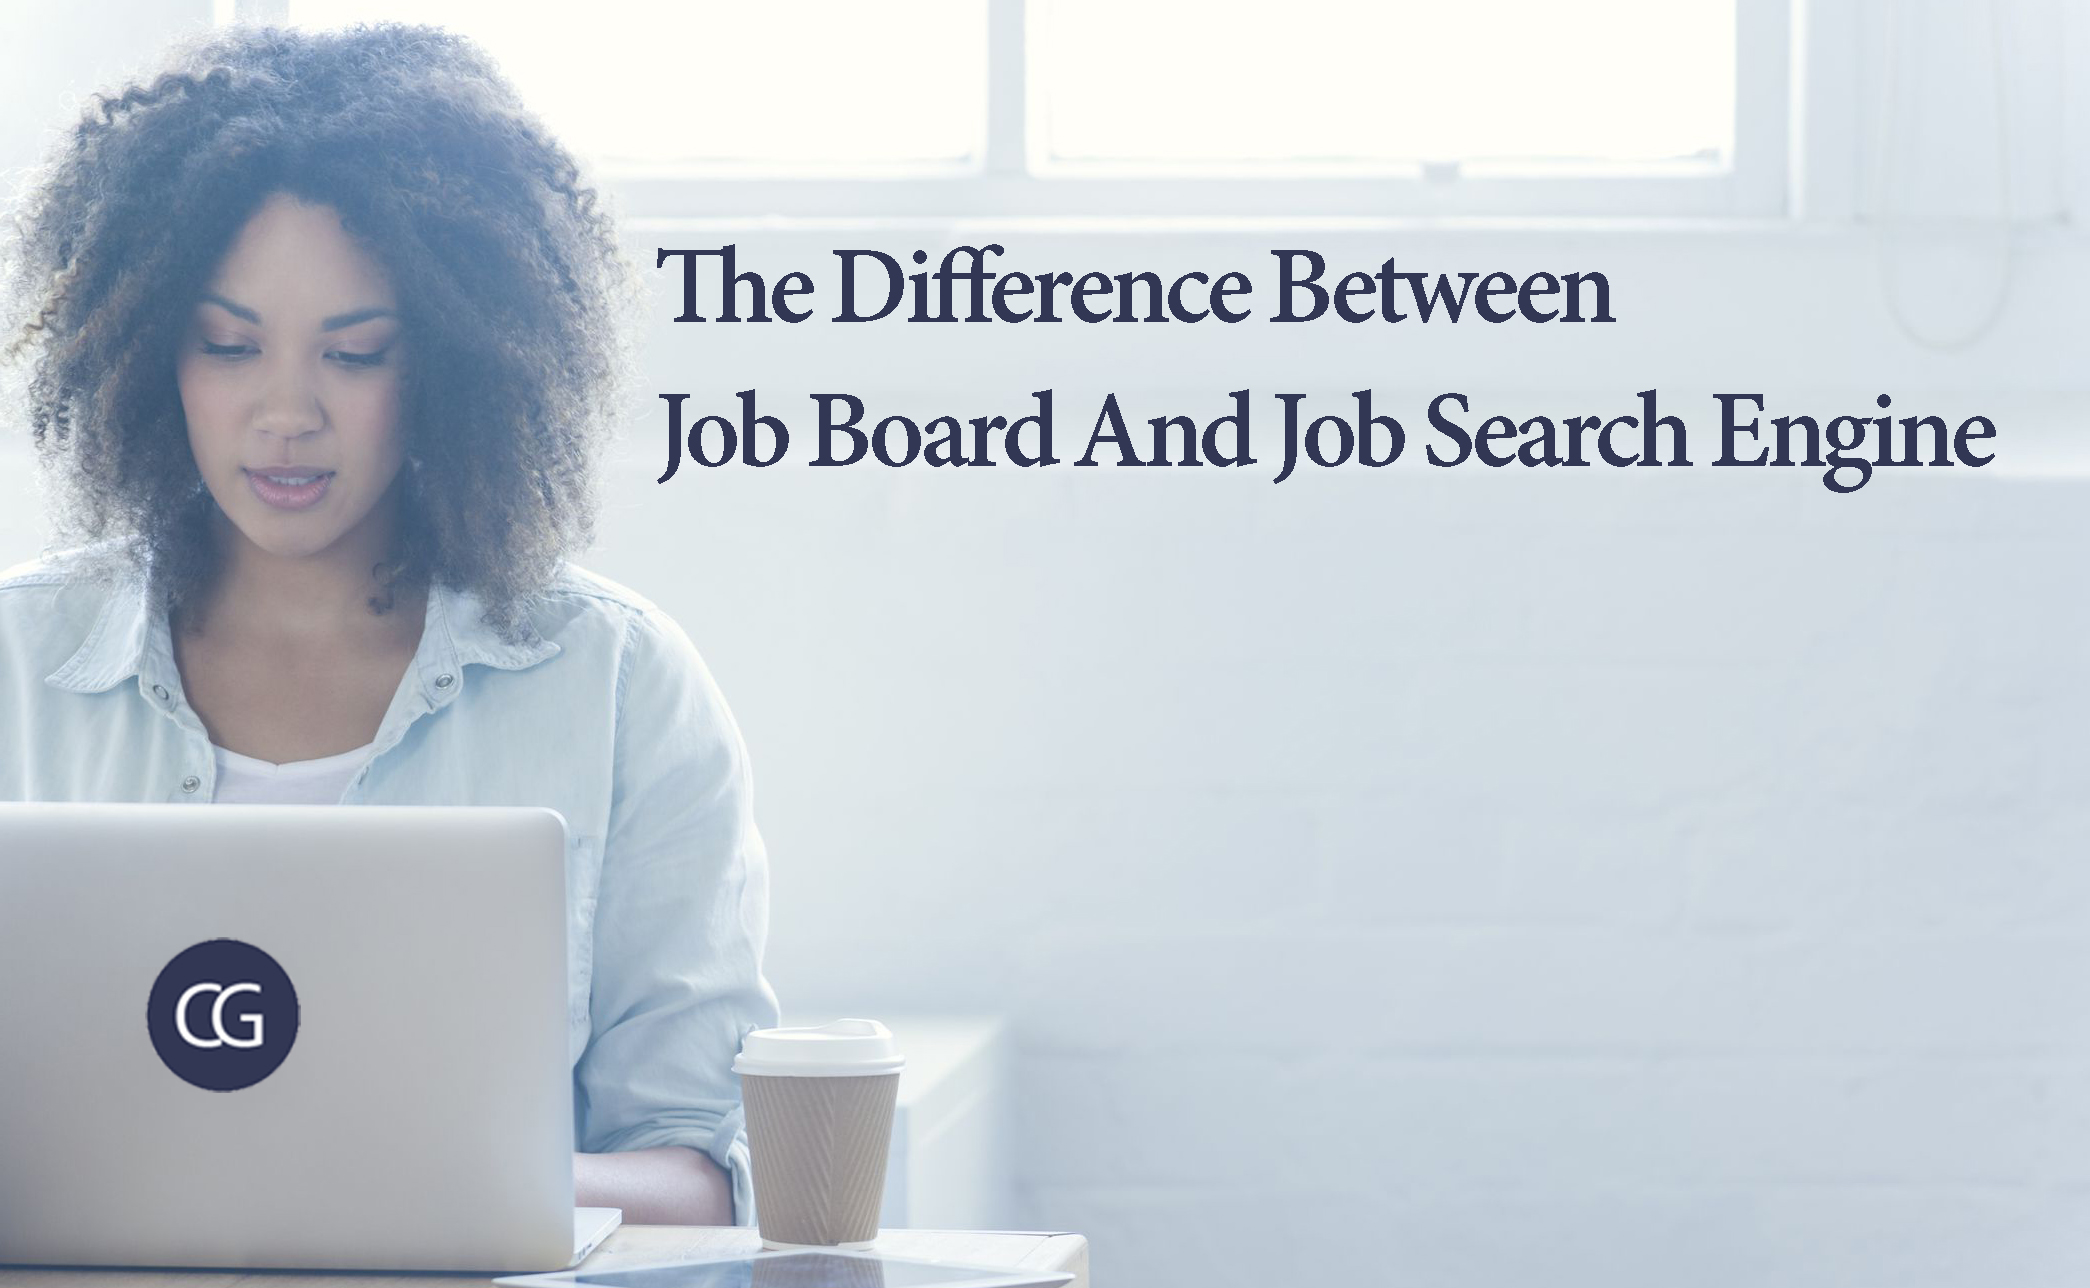 Difference Between Job Board And Job Search Engine